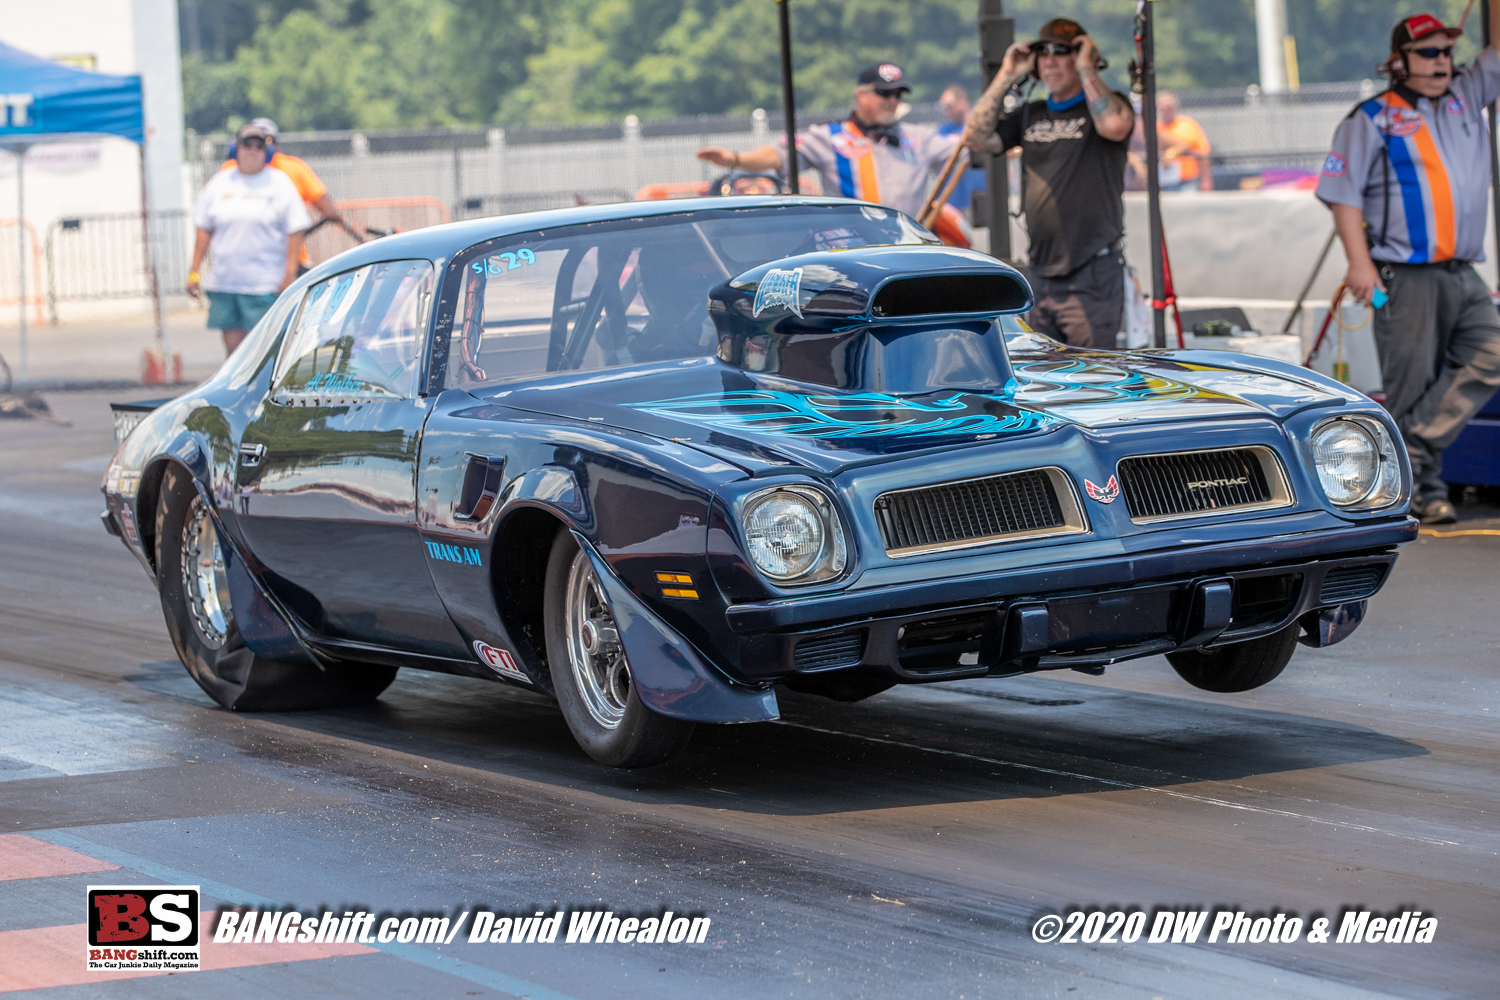 Wheels Up Fun: Check Out The Flying Front Ends From The Recent NHRA Division 2 Lucas Oil Race At GALOT Motorsports Park